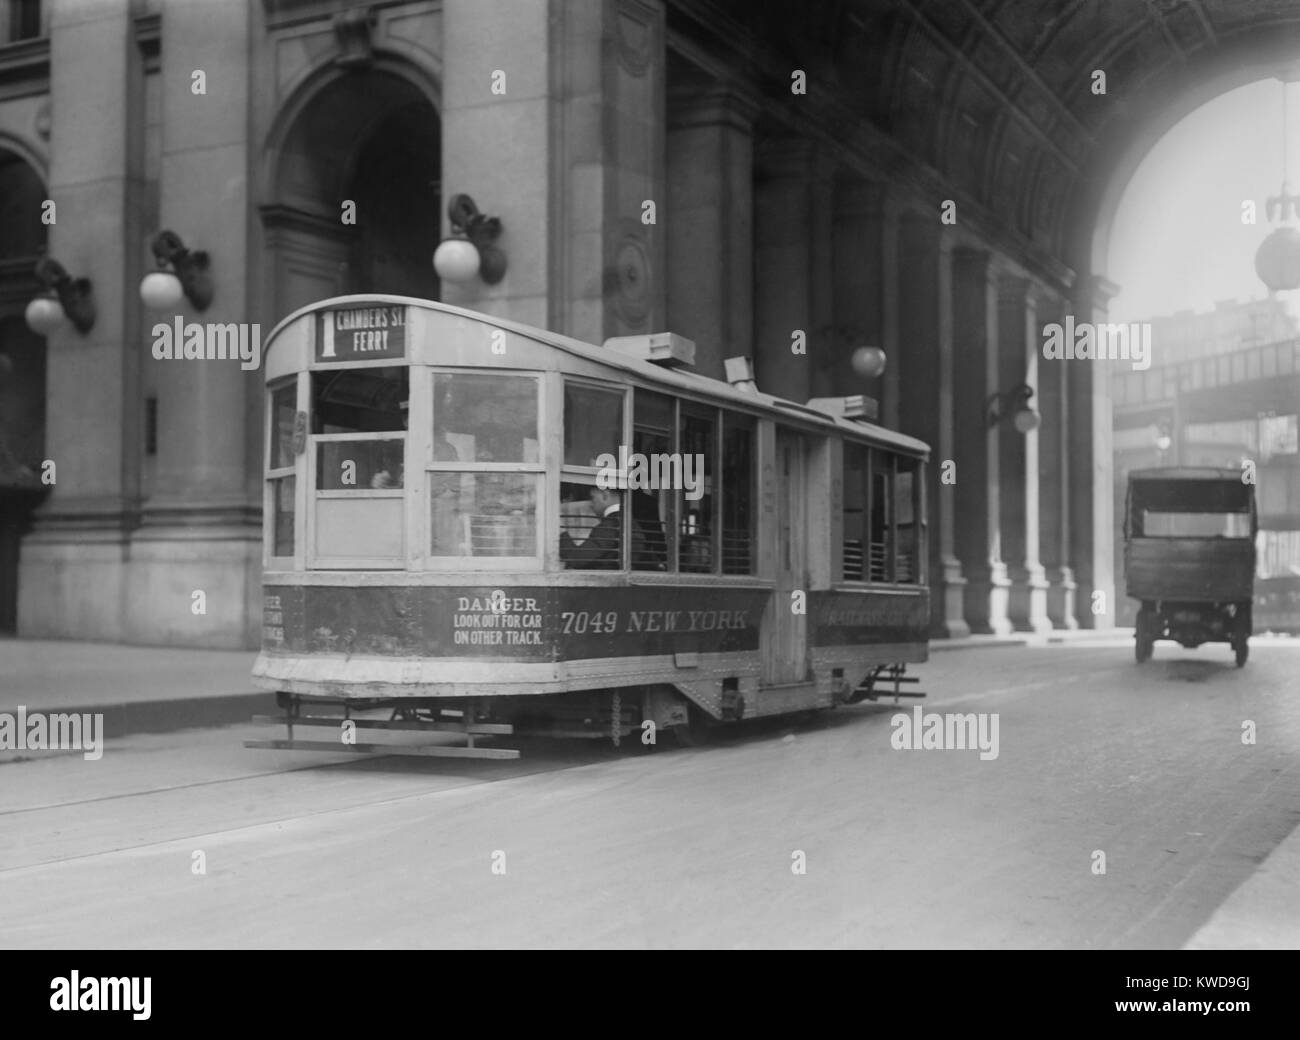 New York City Chambers Street trolley was powered by expensive conduit electric current under the roadway. Typical - Stock Image